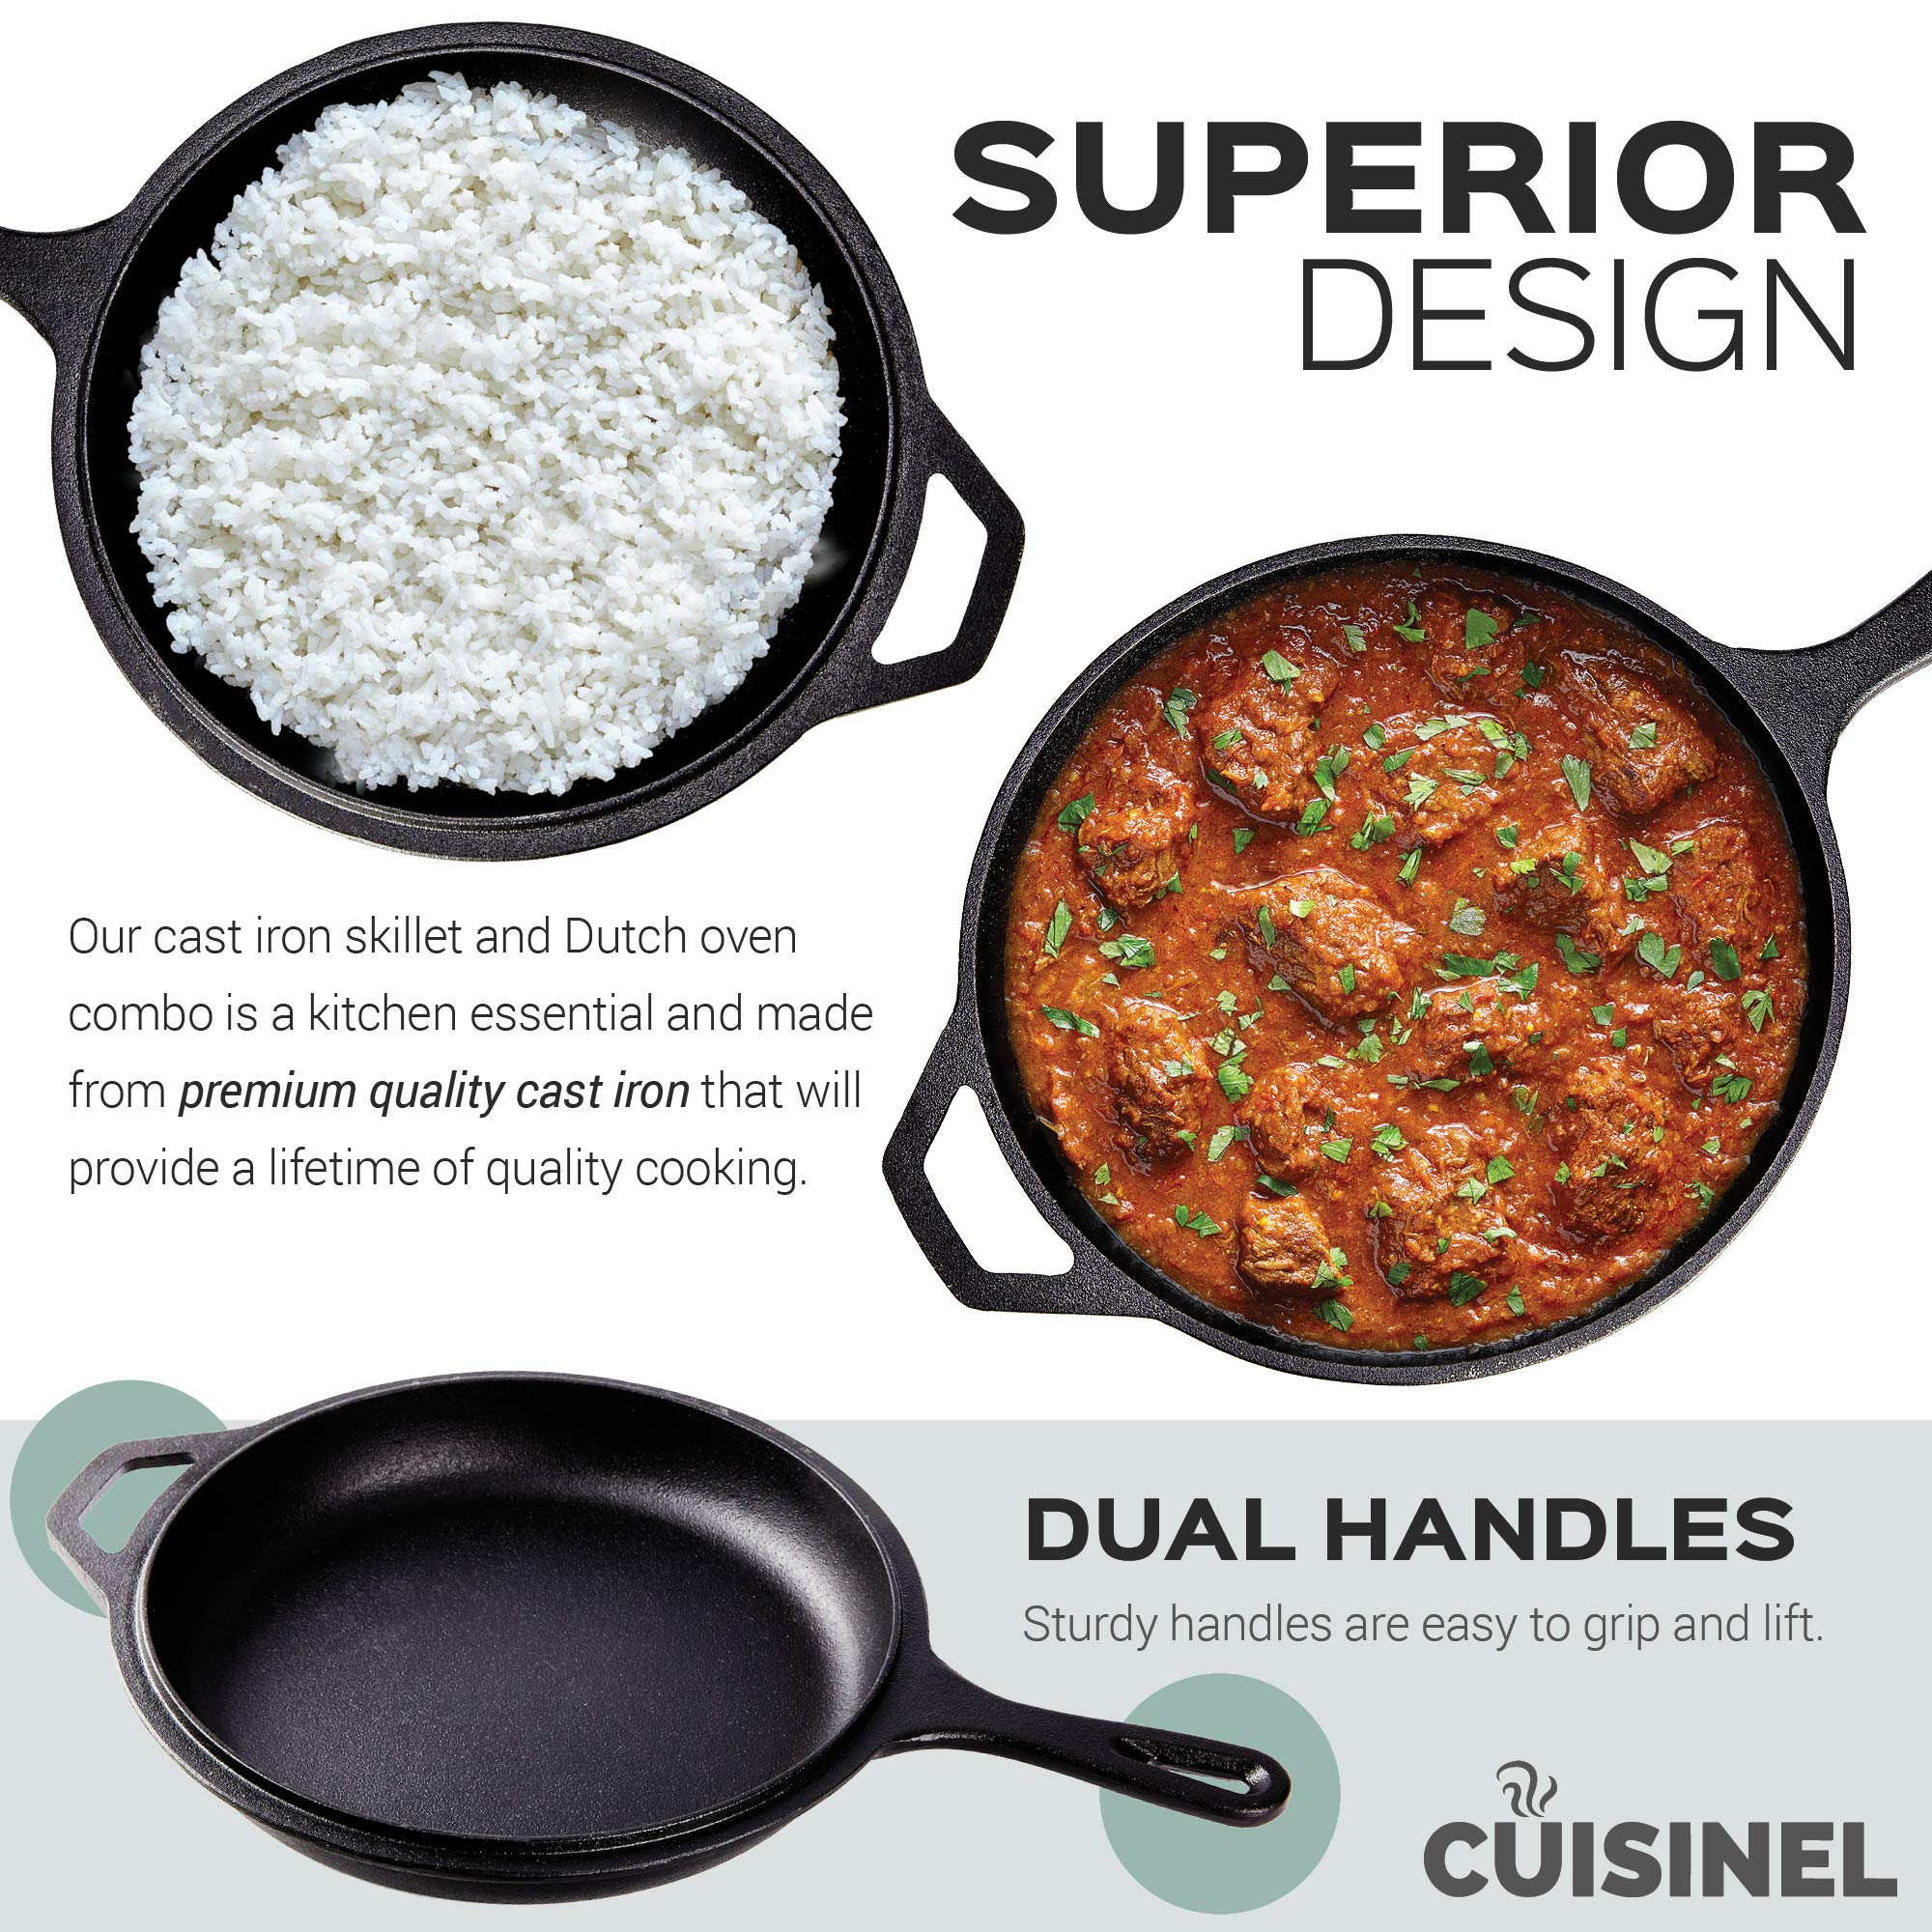 Pre-Seasoned Cast Iron 2-In-1 Multi Cooker | 3-Quart Dutch Oven and Skillet Lid Set Oven Safe Cookware | Use As Dutch Oven and Frying Pan | Indoor and Outdoor Use | Grill, Stovetop, Induction Safe by cuisinel (Image #4)